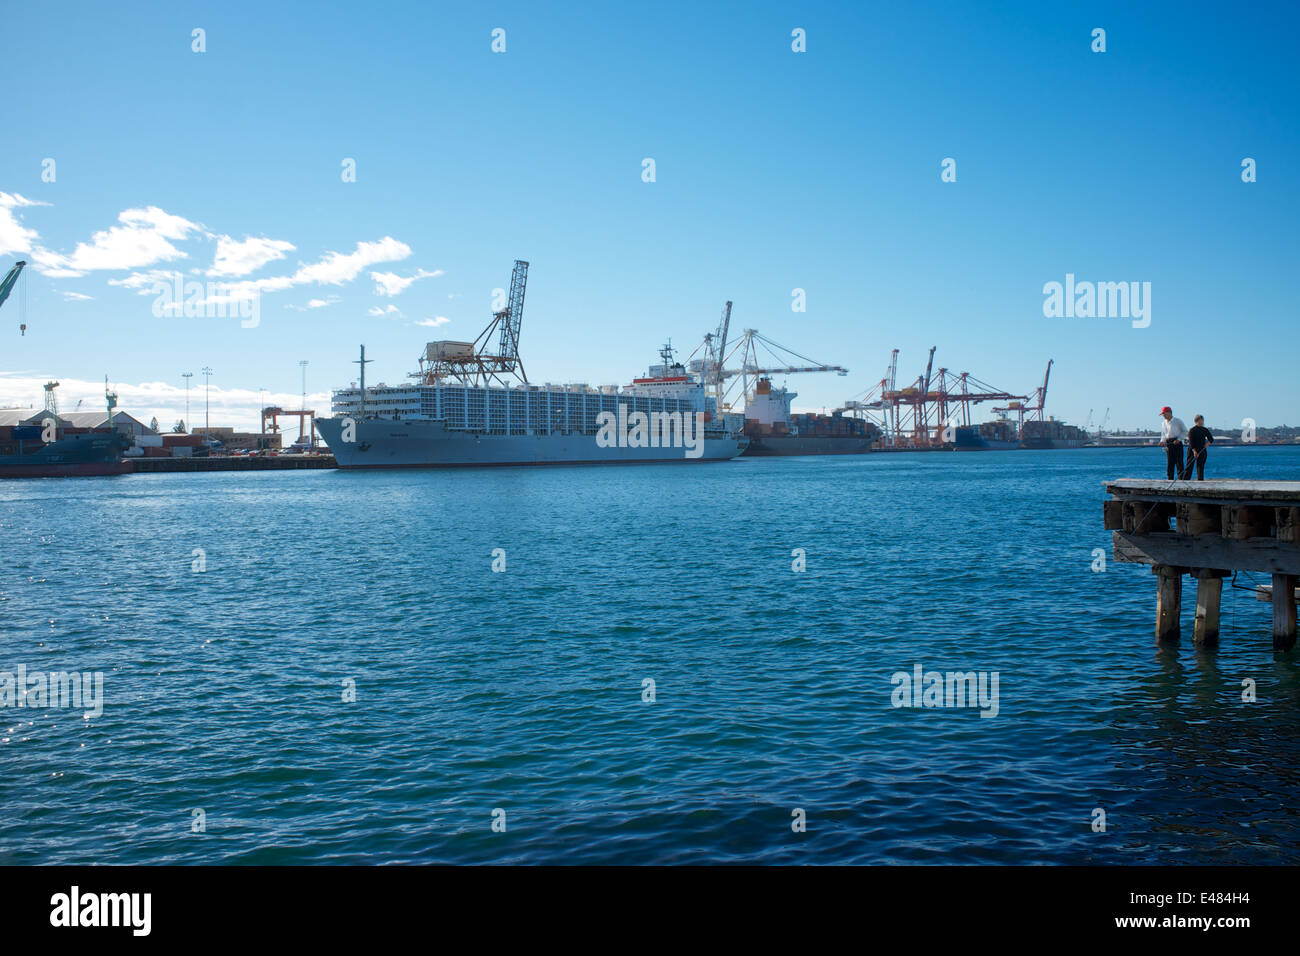 The port of Fremantle. There are two people fishing on the pier to the right of the picture.  The ship is the Maysora. - Stock Image